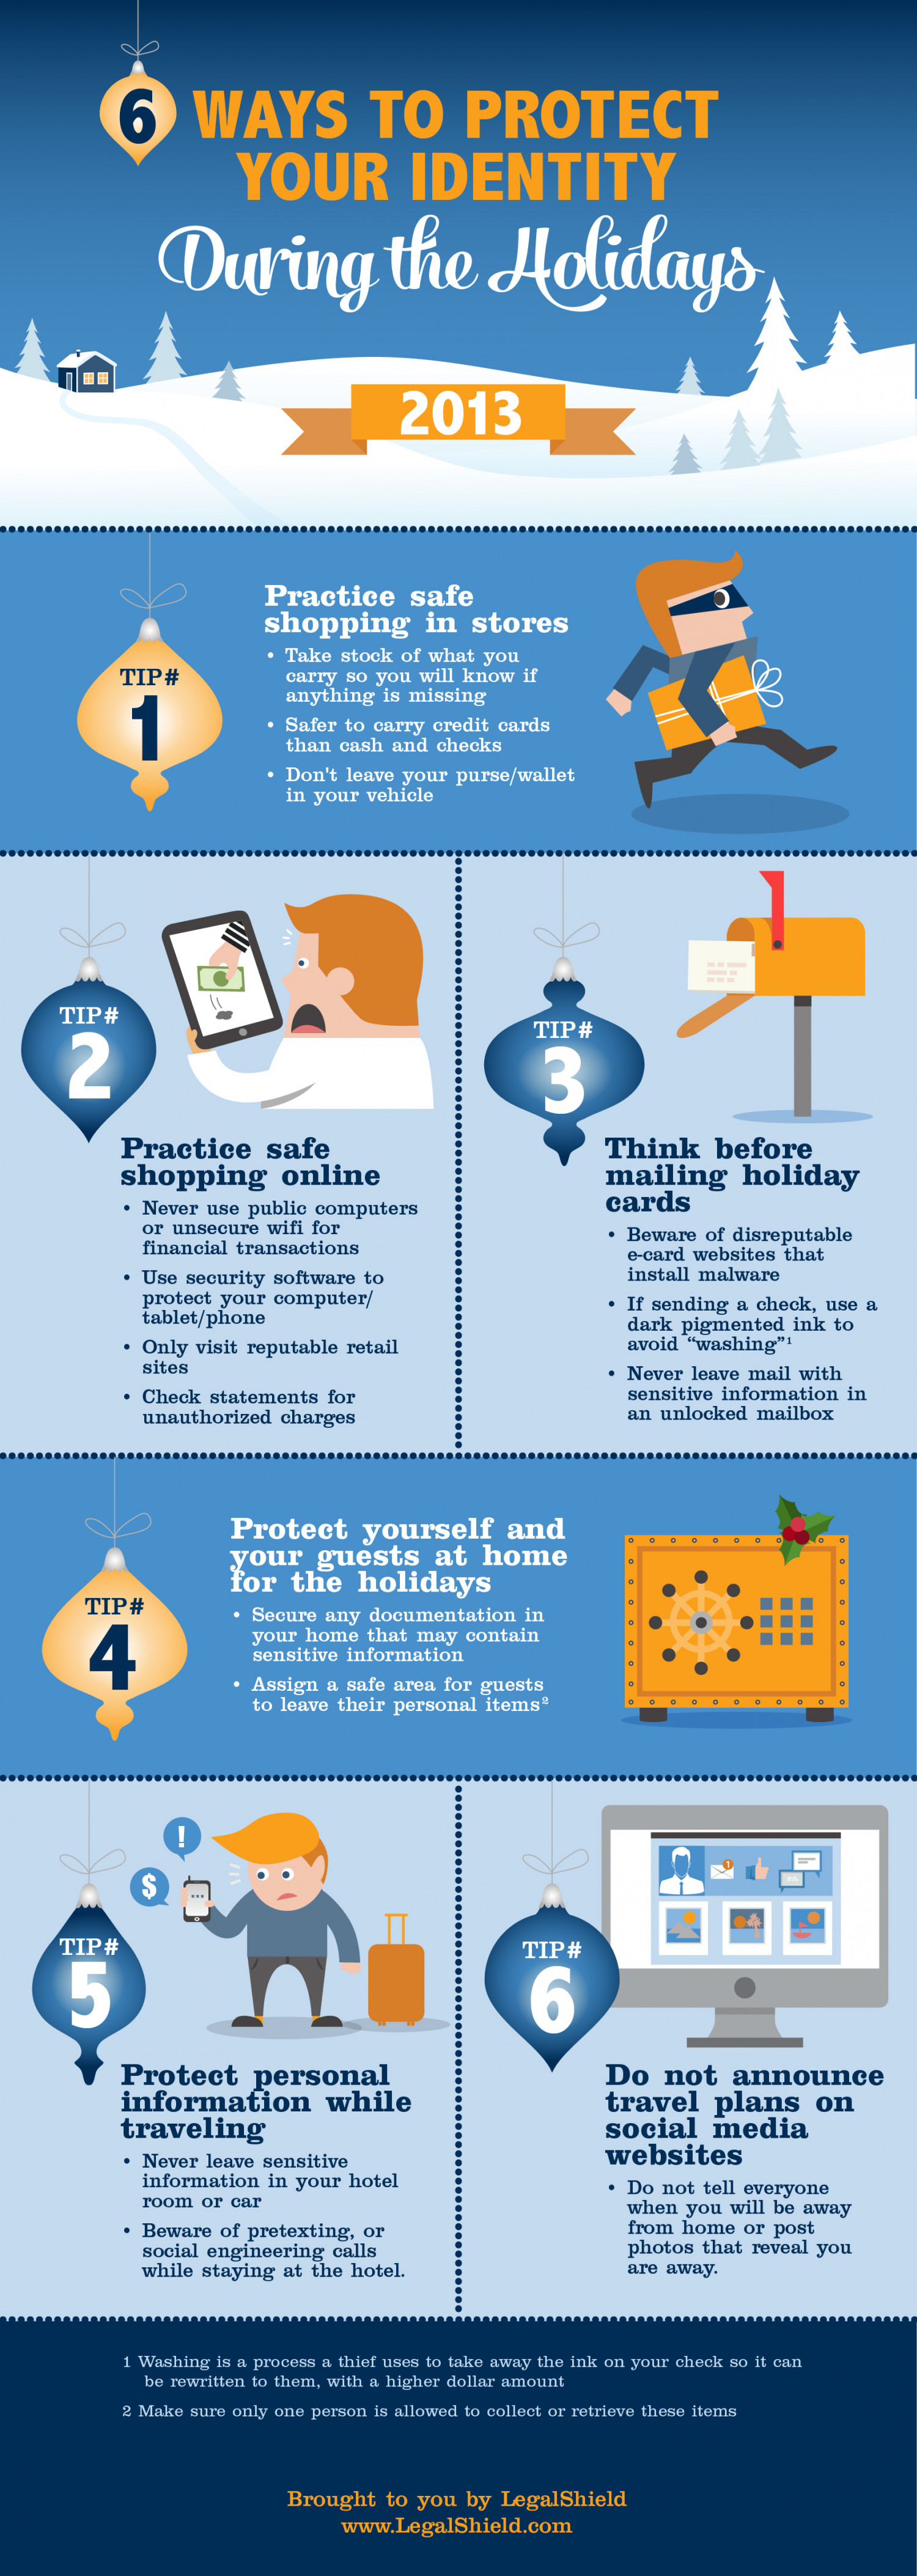 6 Consumer Tips to Protect Your Identity During the Holidays Infographic